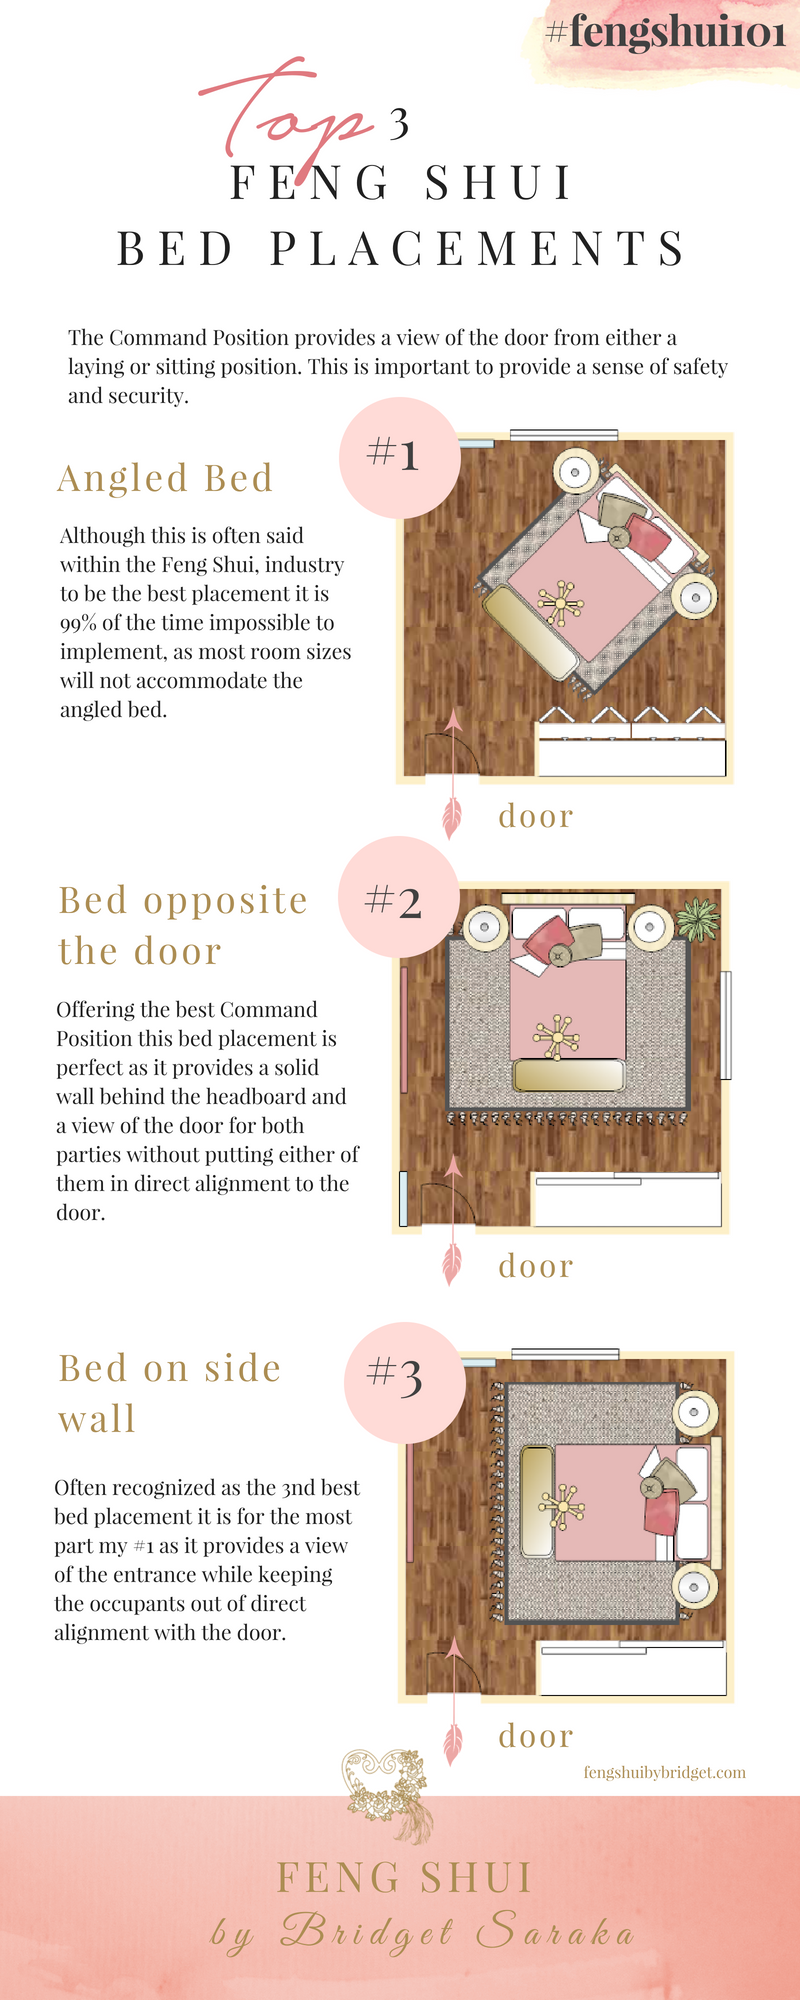 Top 3 Best Feng Shui Bed Placements Fengshui101 Feng Shui By